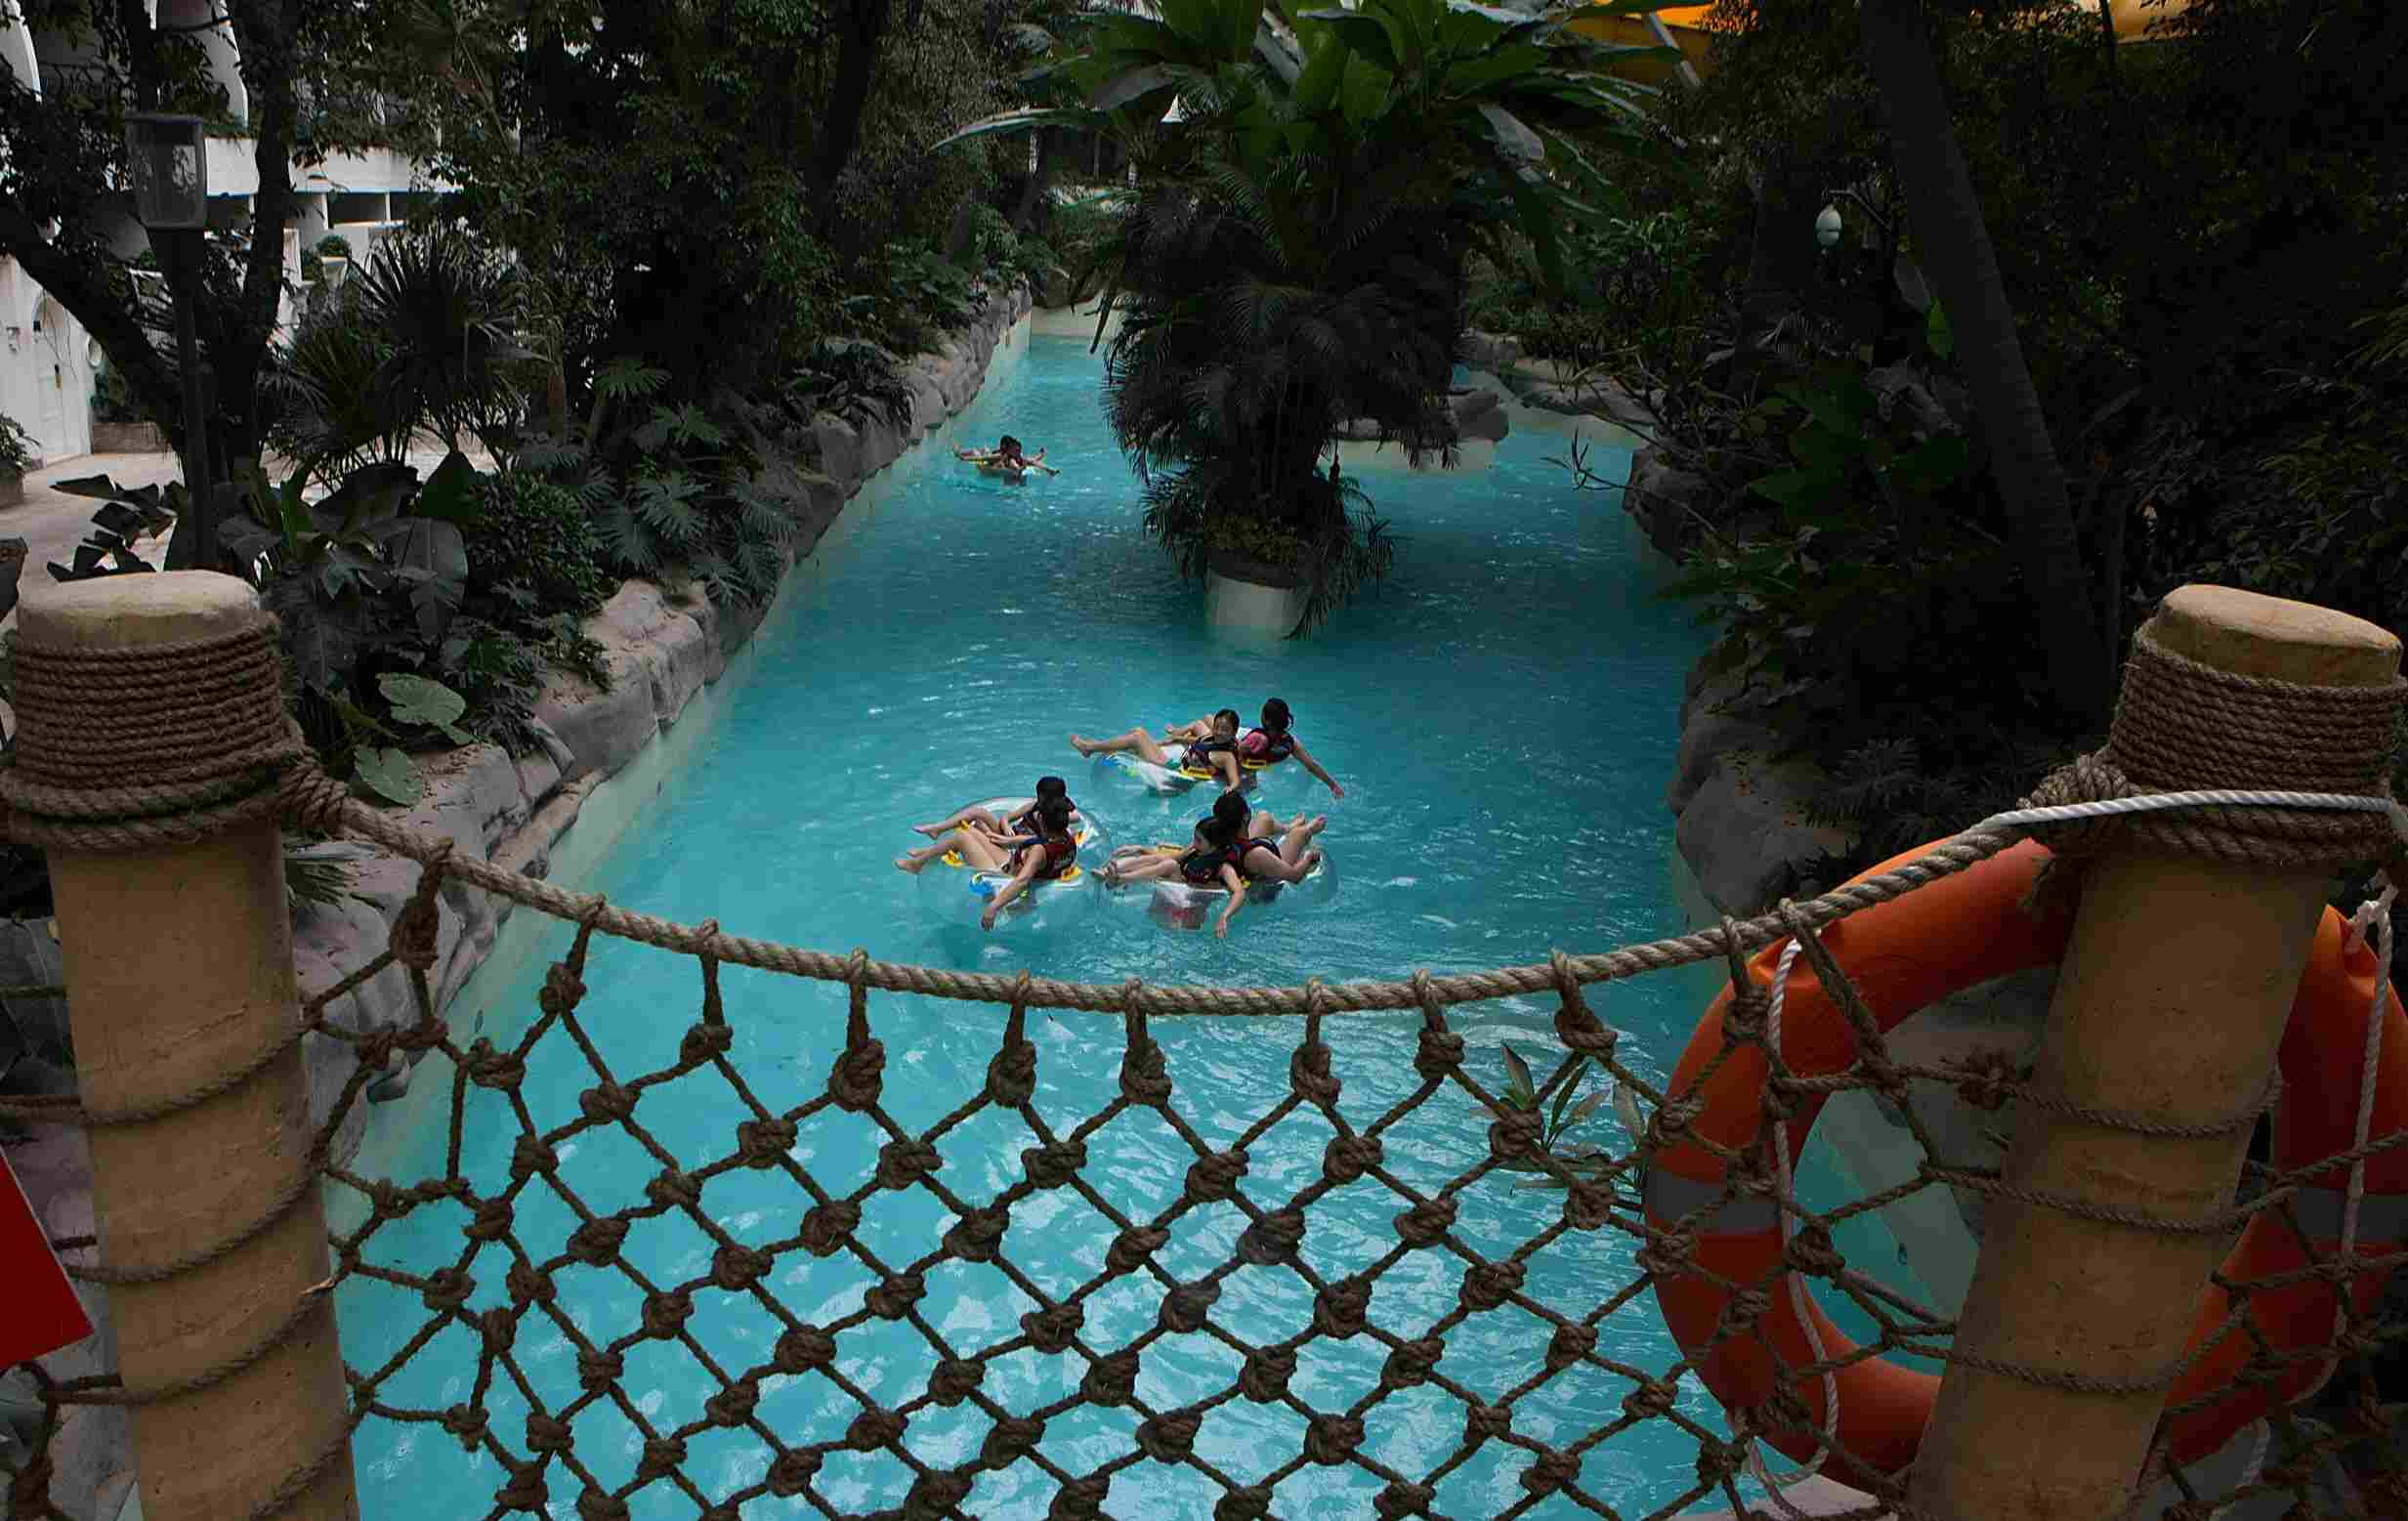 Rafting on a river that runs through the Paradise Island Water Park inside the New Century Global Center in Chengdu, China